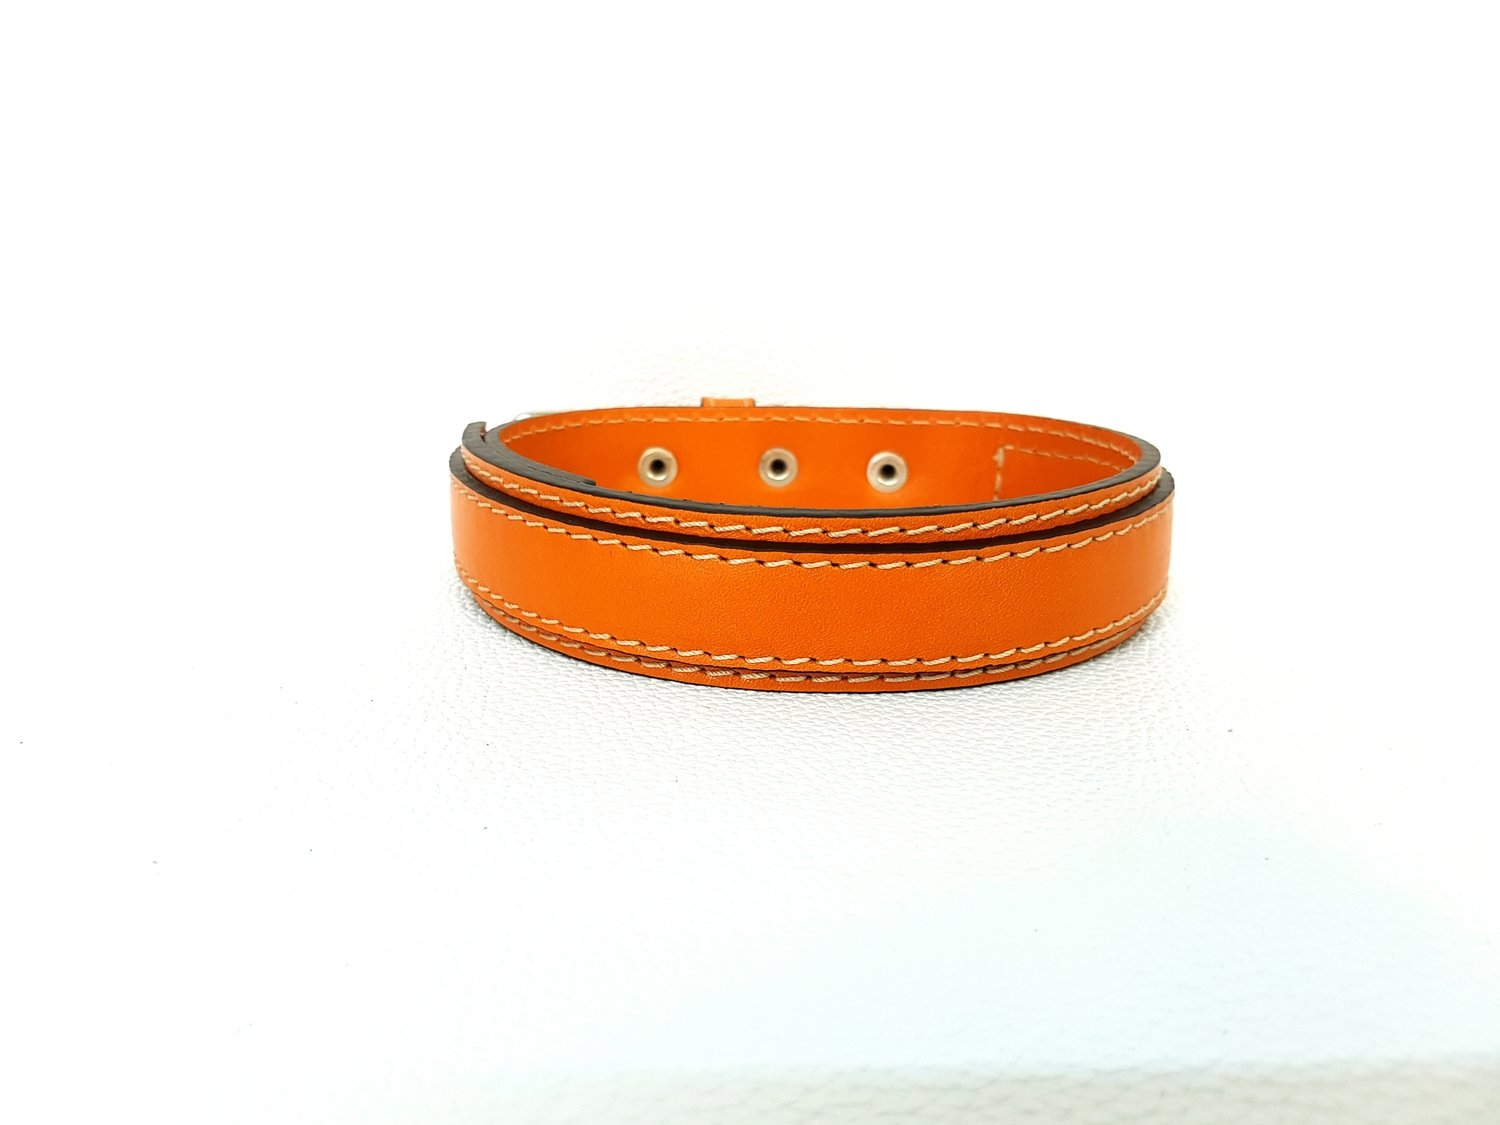 Arancione / Orange (3 cm / 1,18 inches)